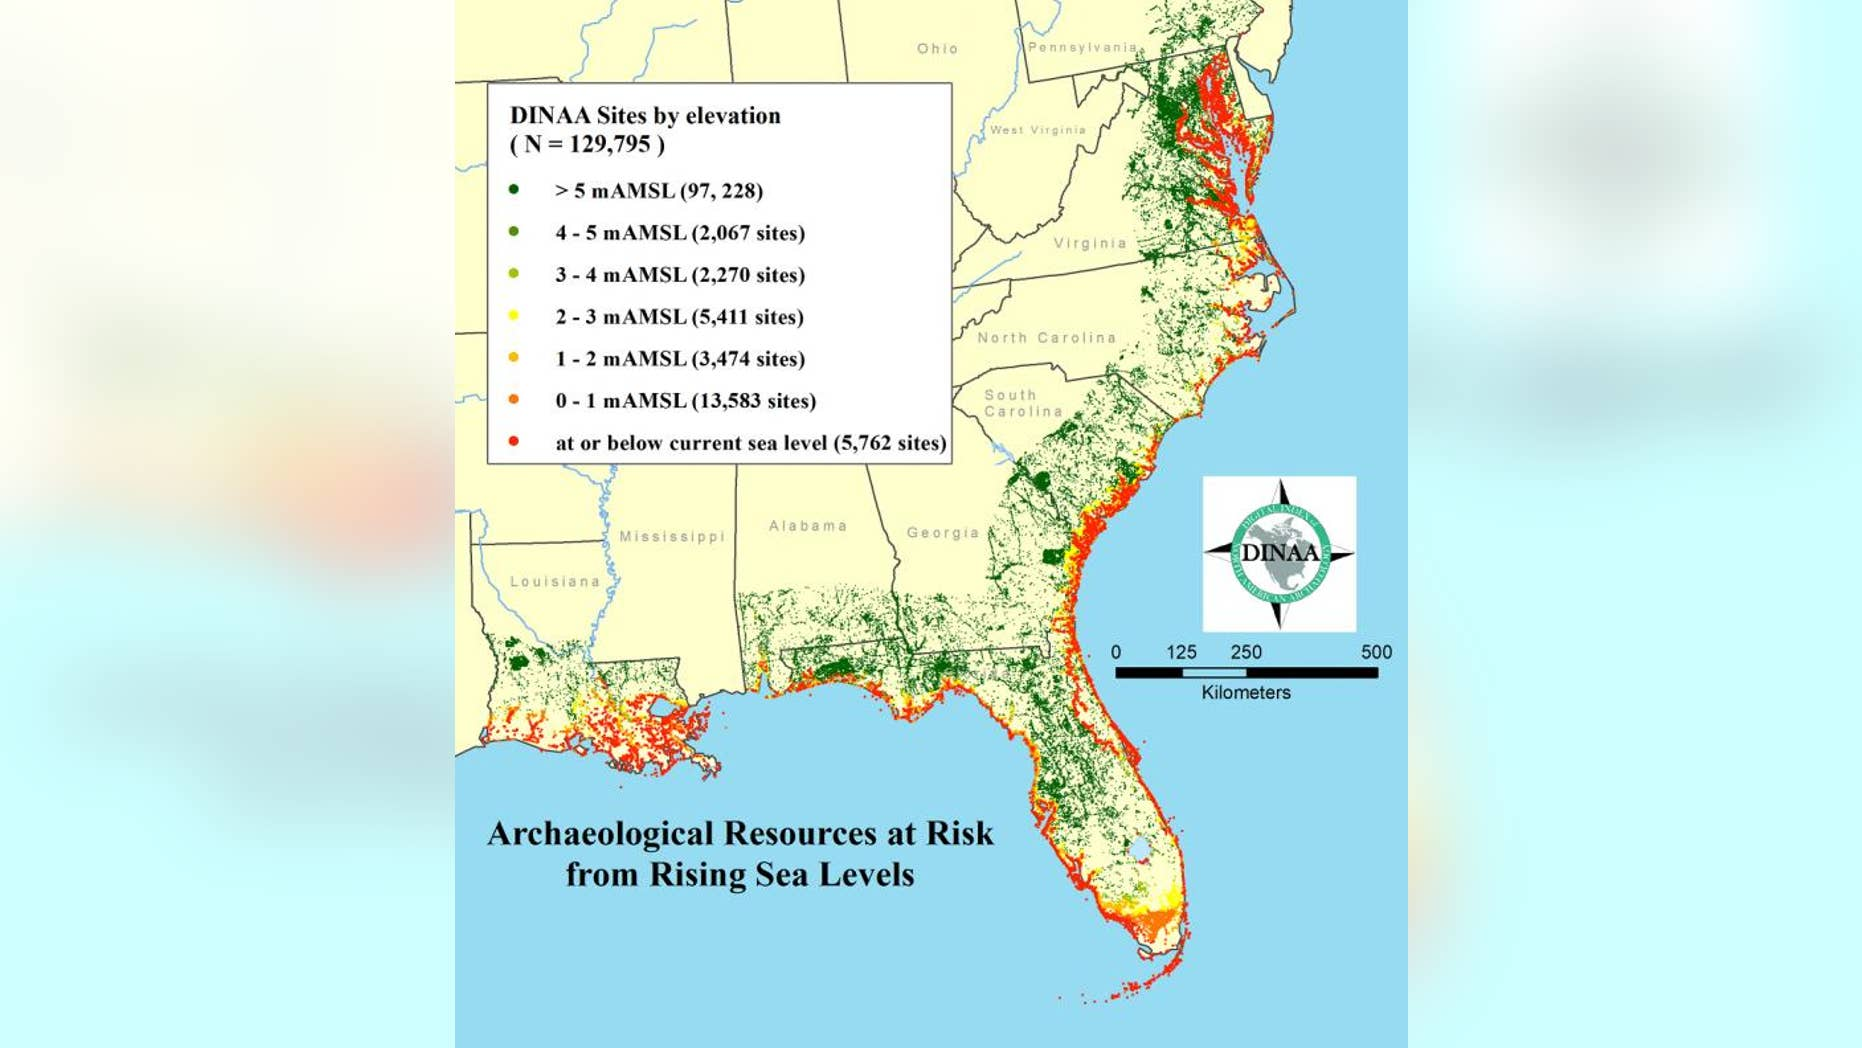 Tens of thousands of known archaeological sites are threatened by sea level rise in the southeast, and far more currently unknown and unrecorded, as shown here at low spatial resolution.